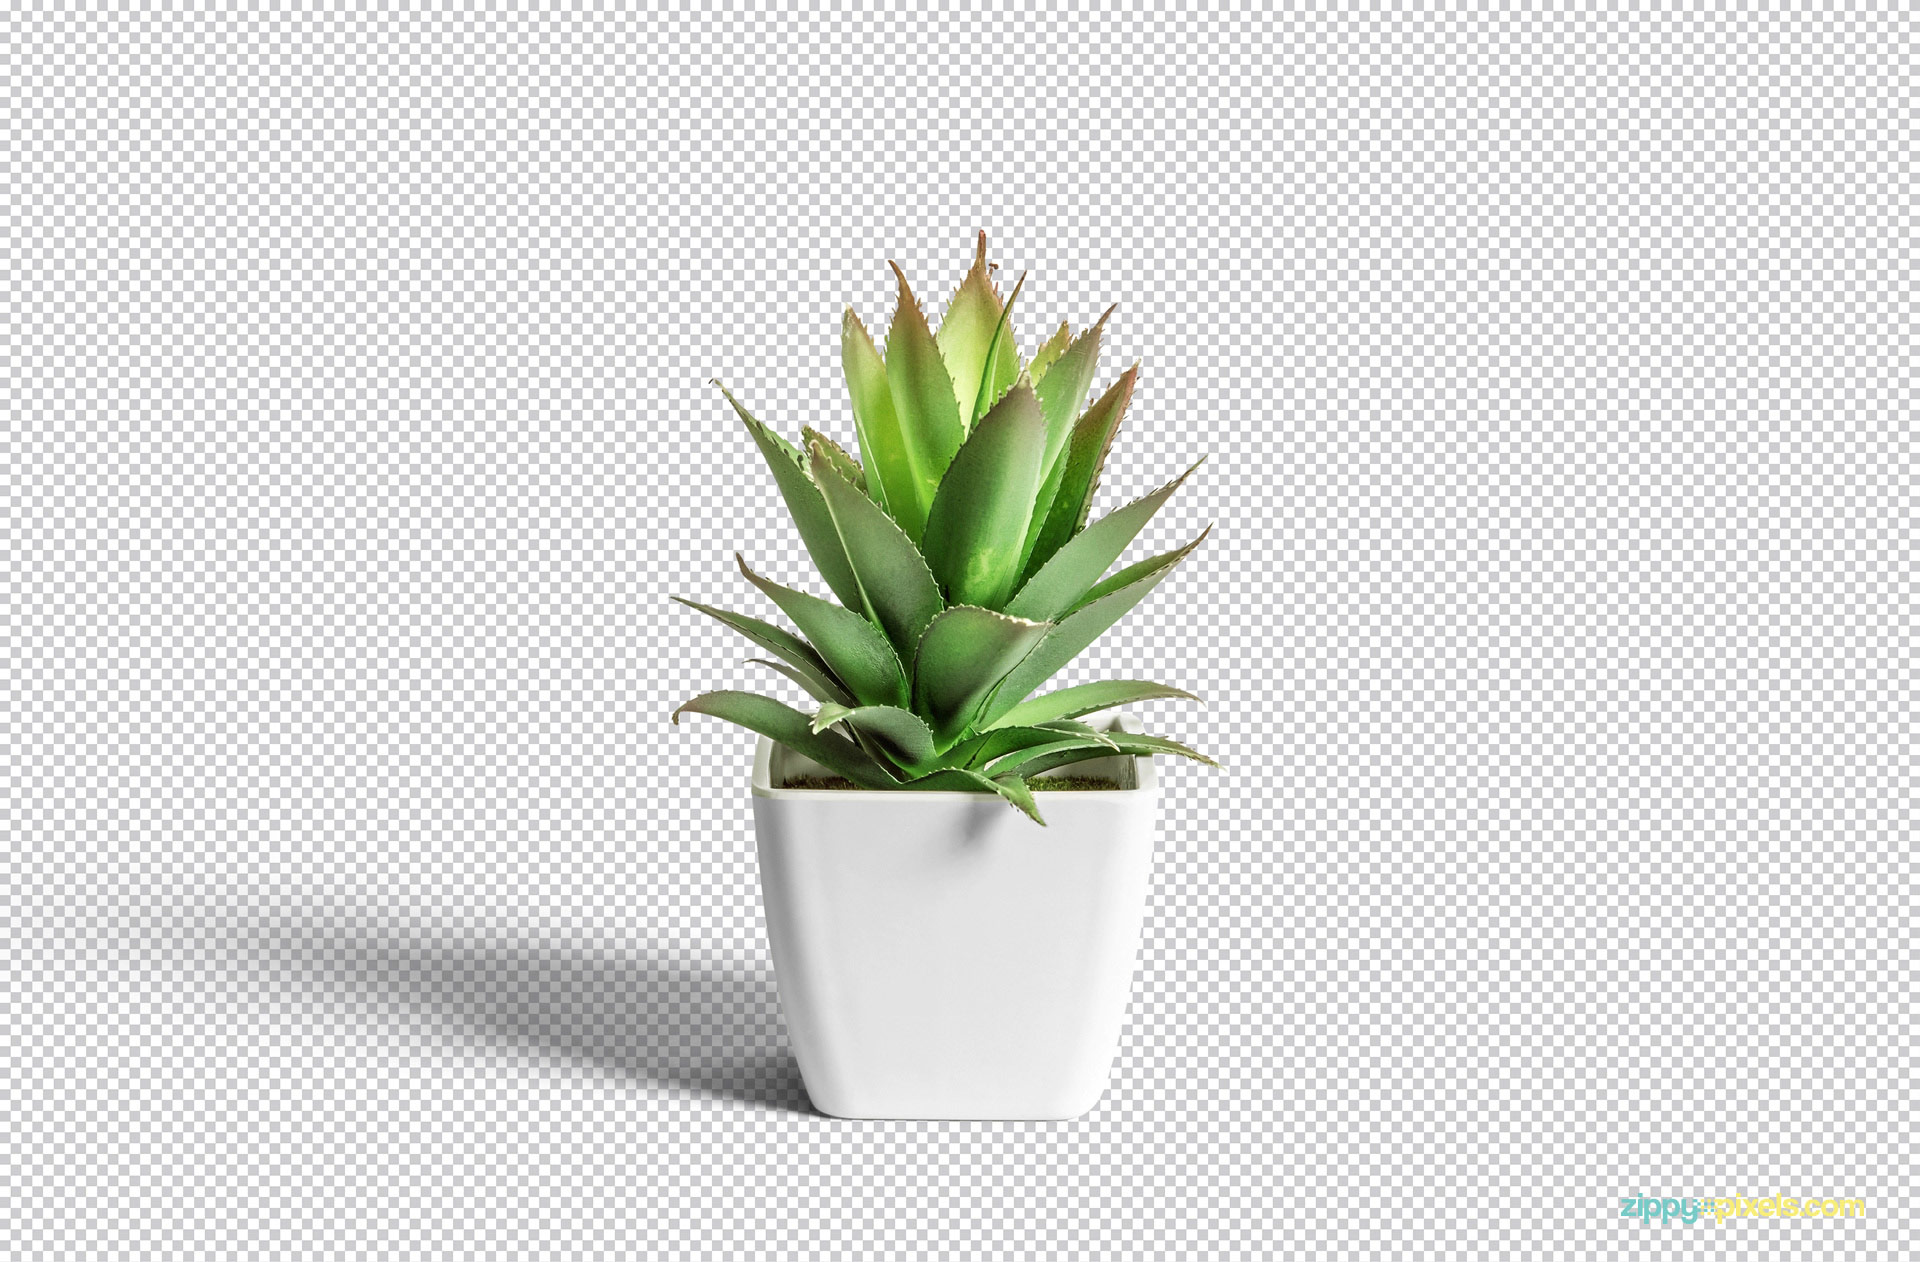 Use Adobe Photoshop for editing this white pot mockup PSD.